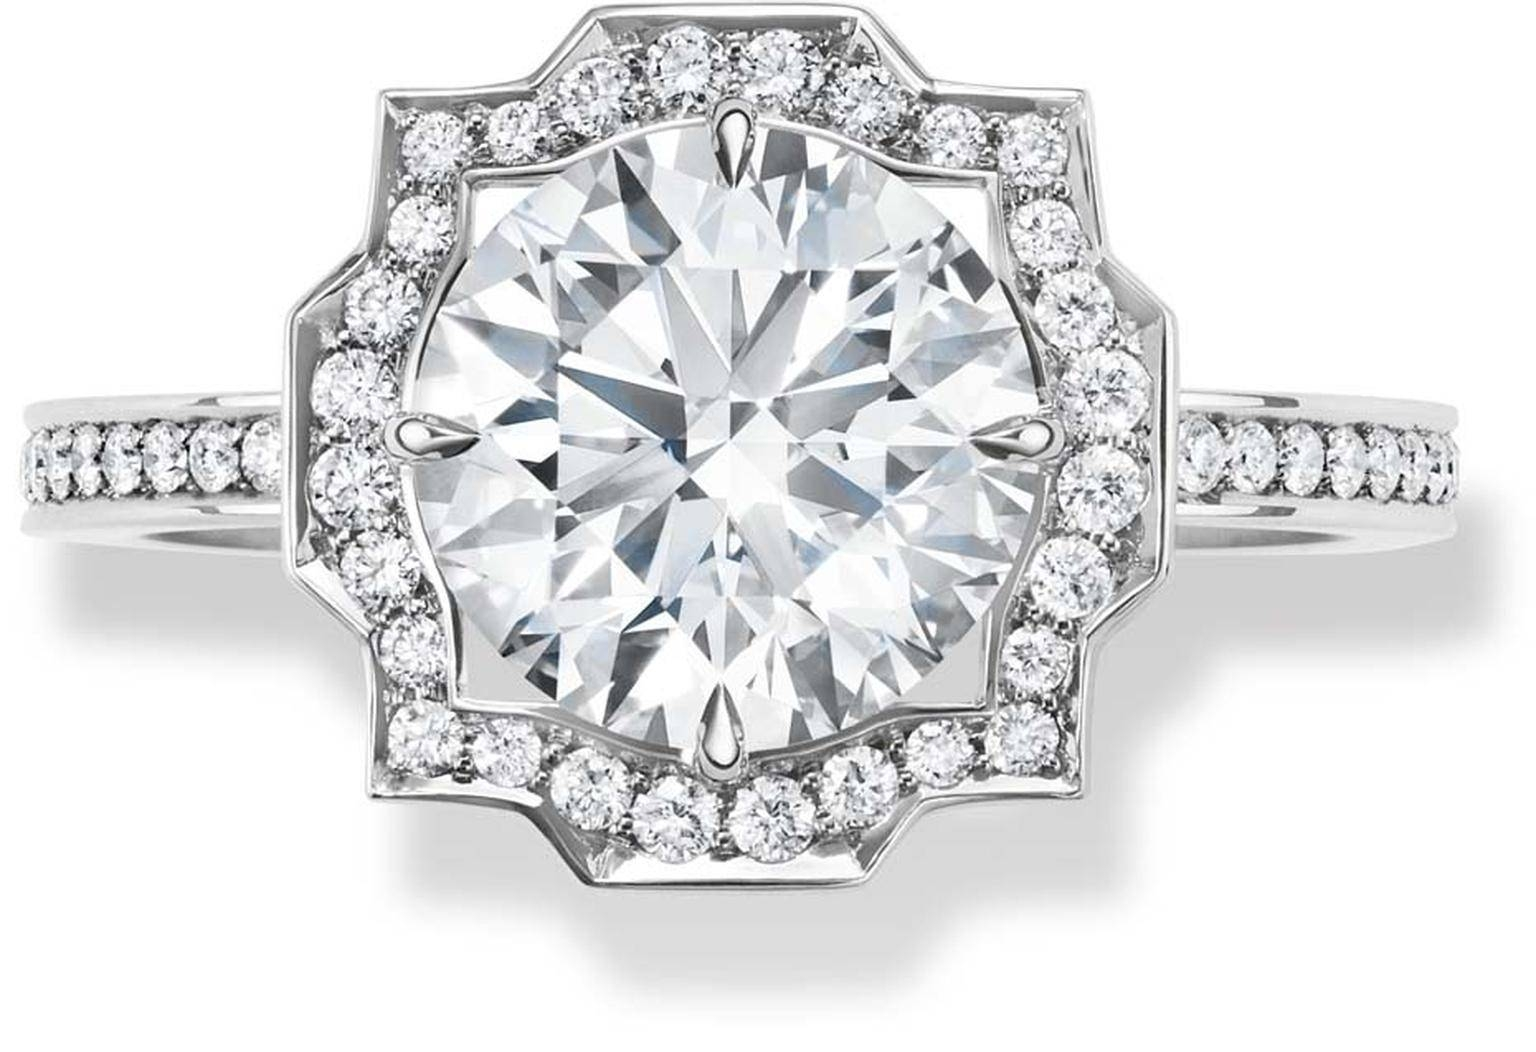 Harry Winston Belle Vintage Style Engagement Ring With A In Harry Winston Belle Engagement Rings (View 9 of 15)